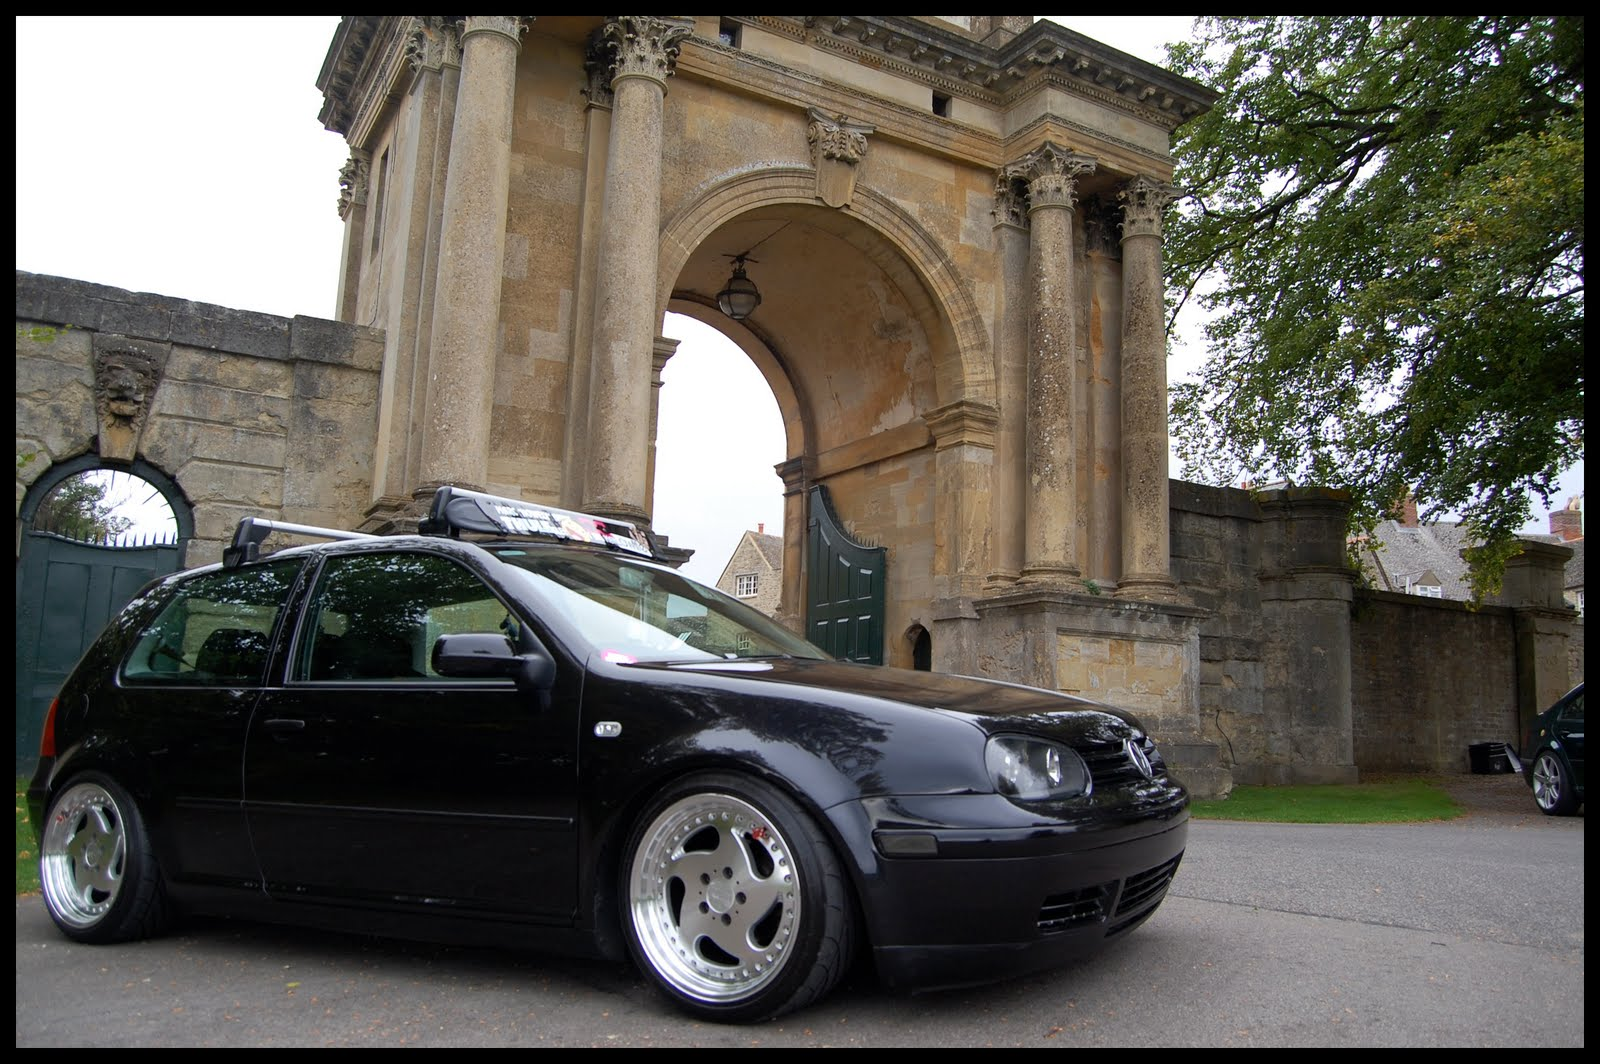 It's a MK4 thing.